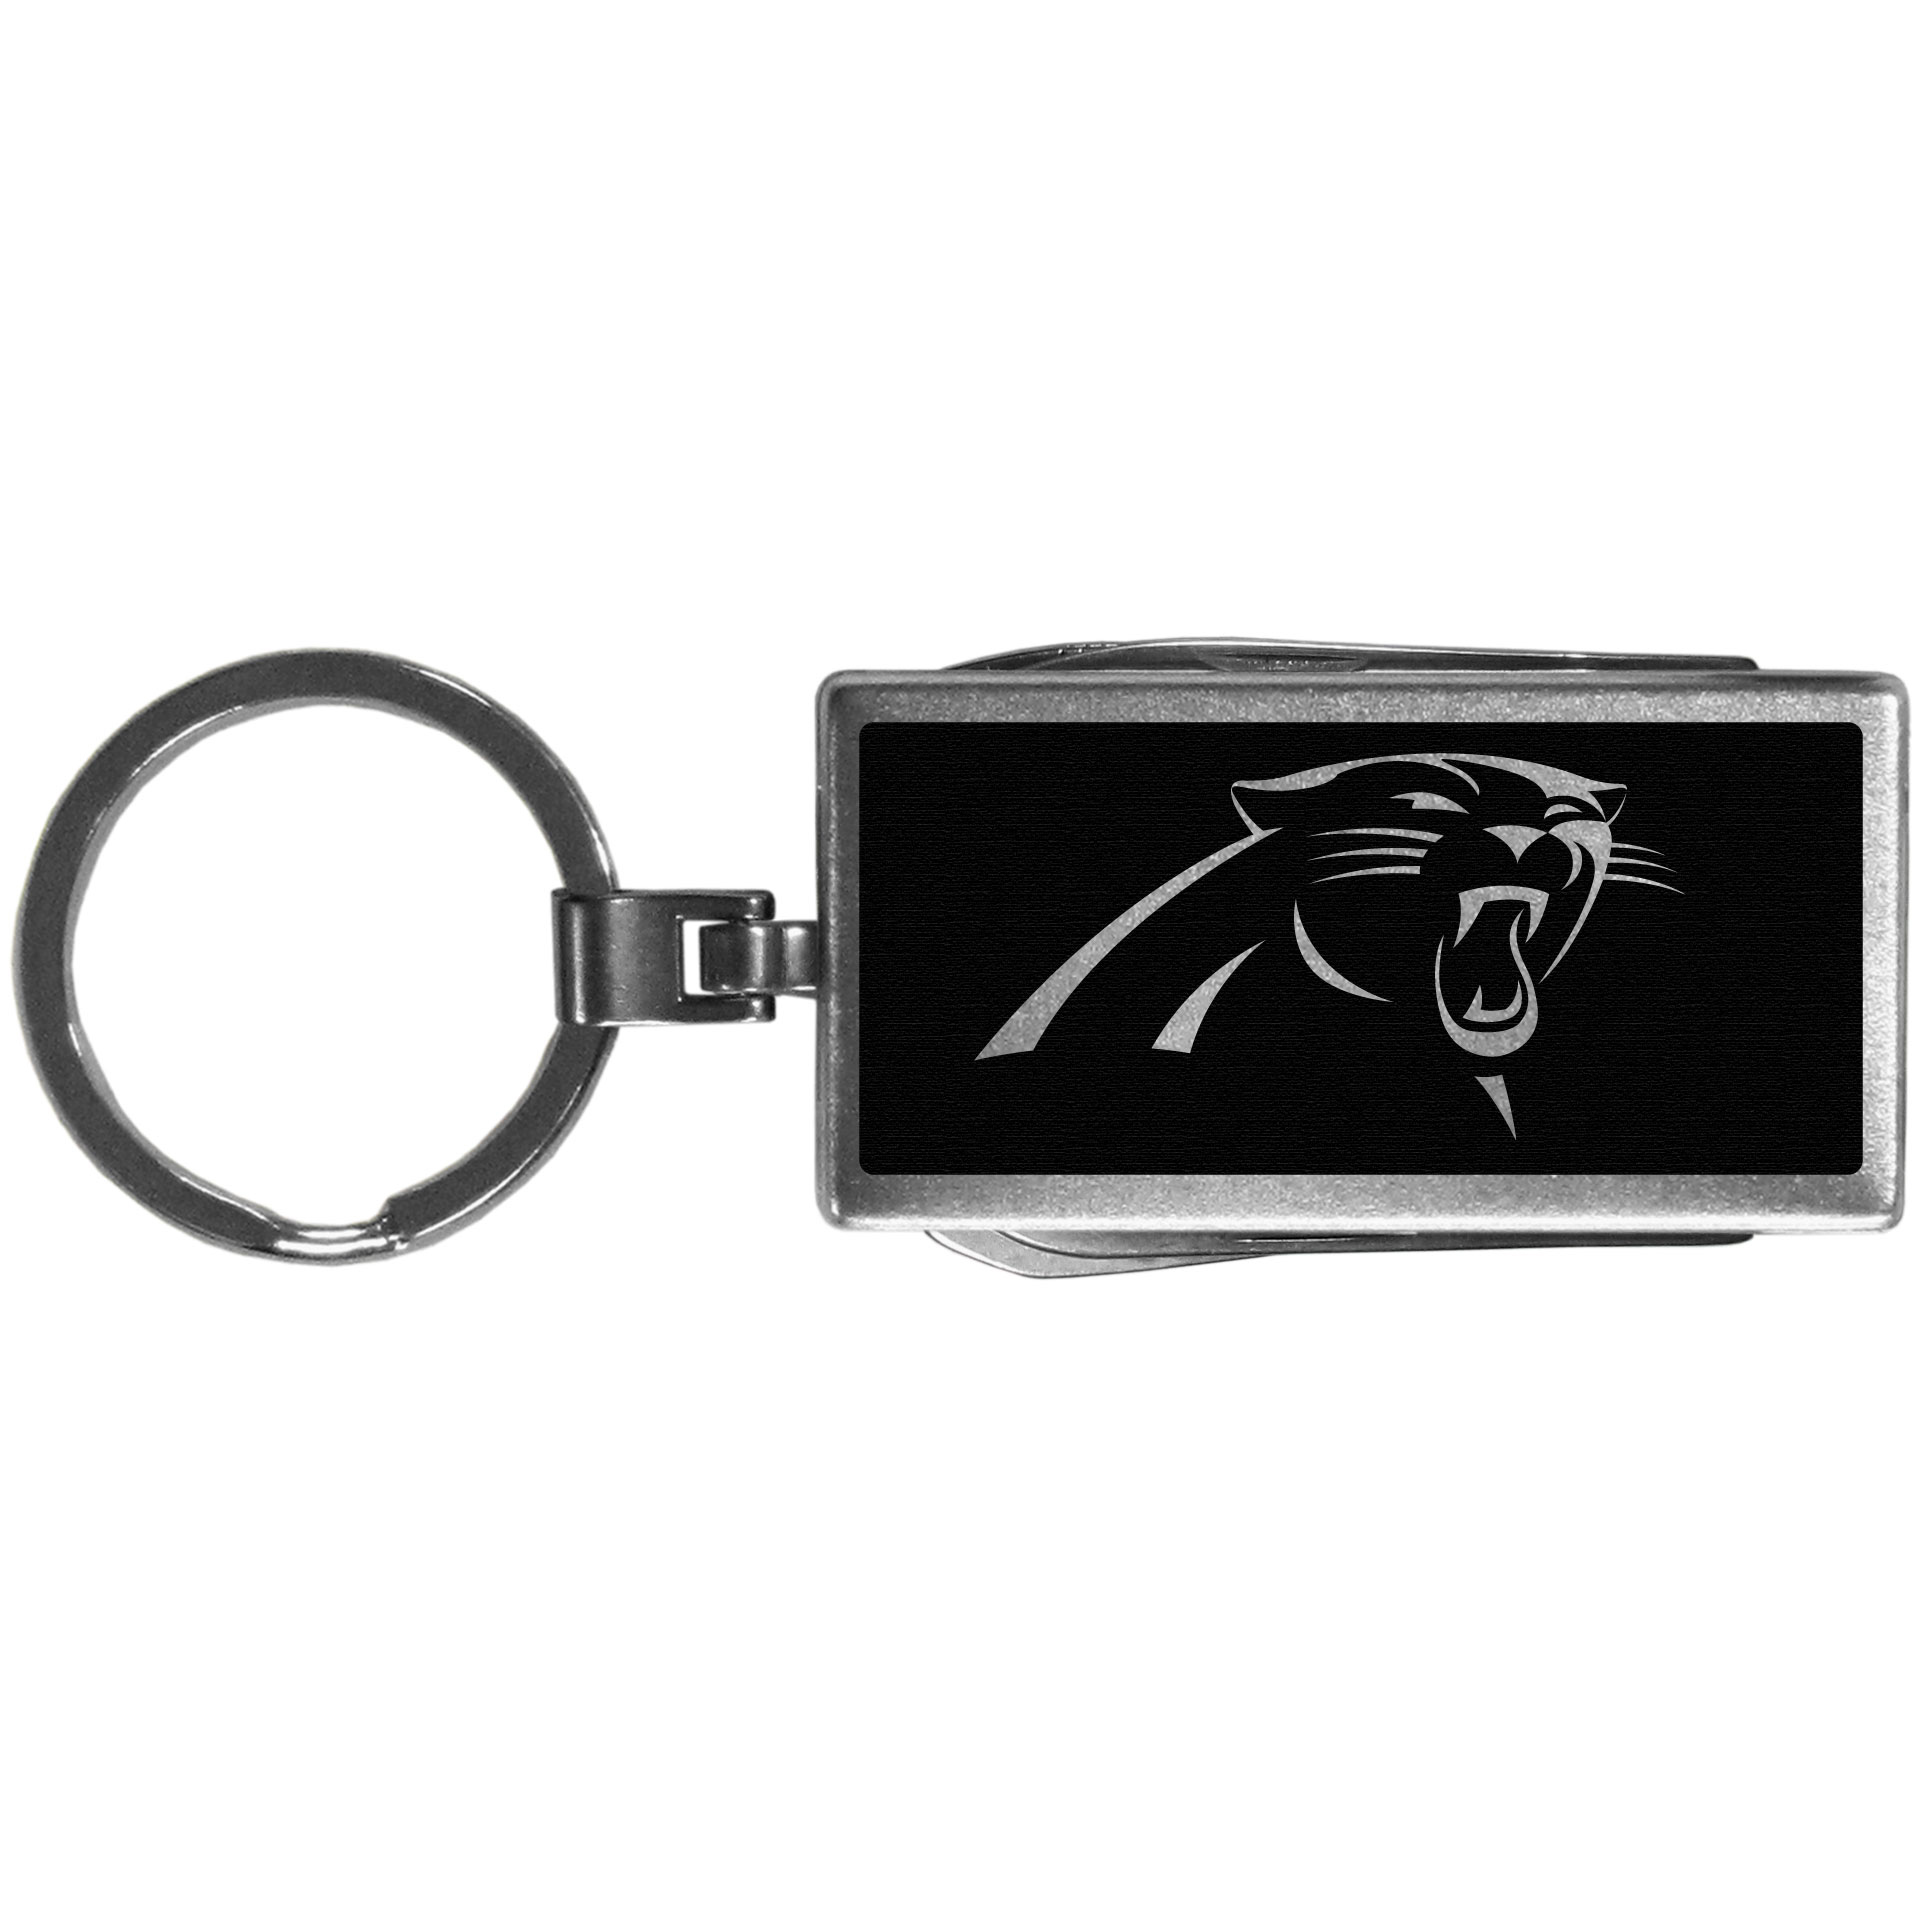 Carolina Panthers Multi-tool Key Chain, Black - Be the hero at the tailgate, camping, or on a Friday night with your Carolina Panthers Multi-Tool Keychain which comes complete with bottle opener, scissors, knife, nail file and screw driver. Be it opening a package or a beverage Siskiyou's Multi-Tool Keychain goes wherever your keys do. The keychain hangs at 4 inches long when closed.